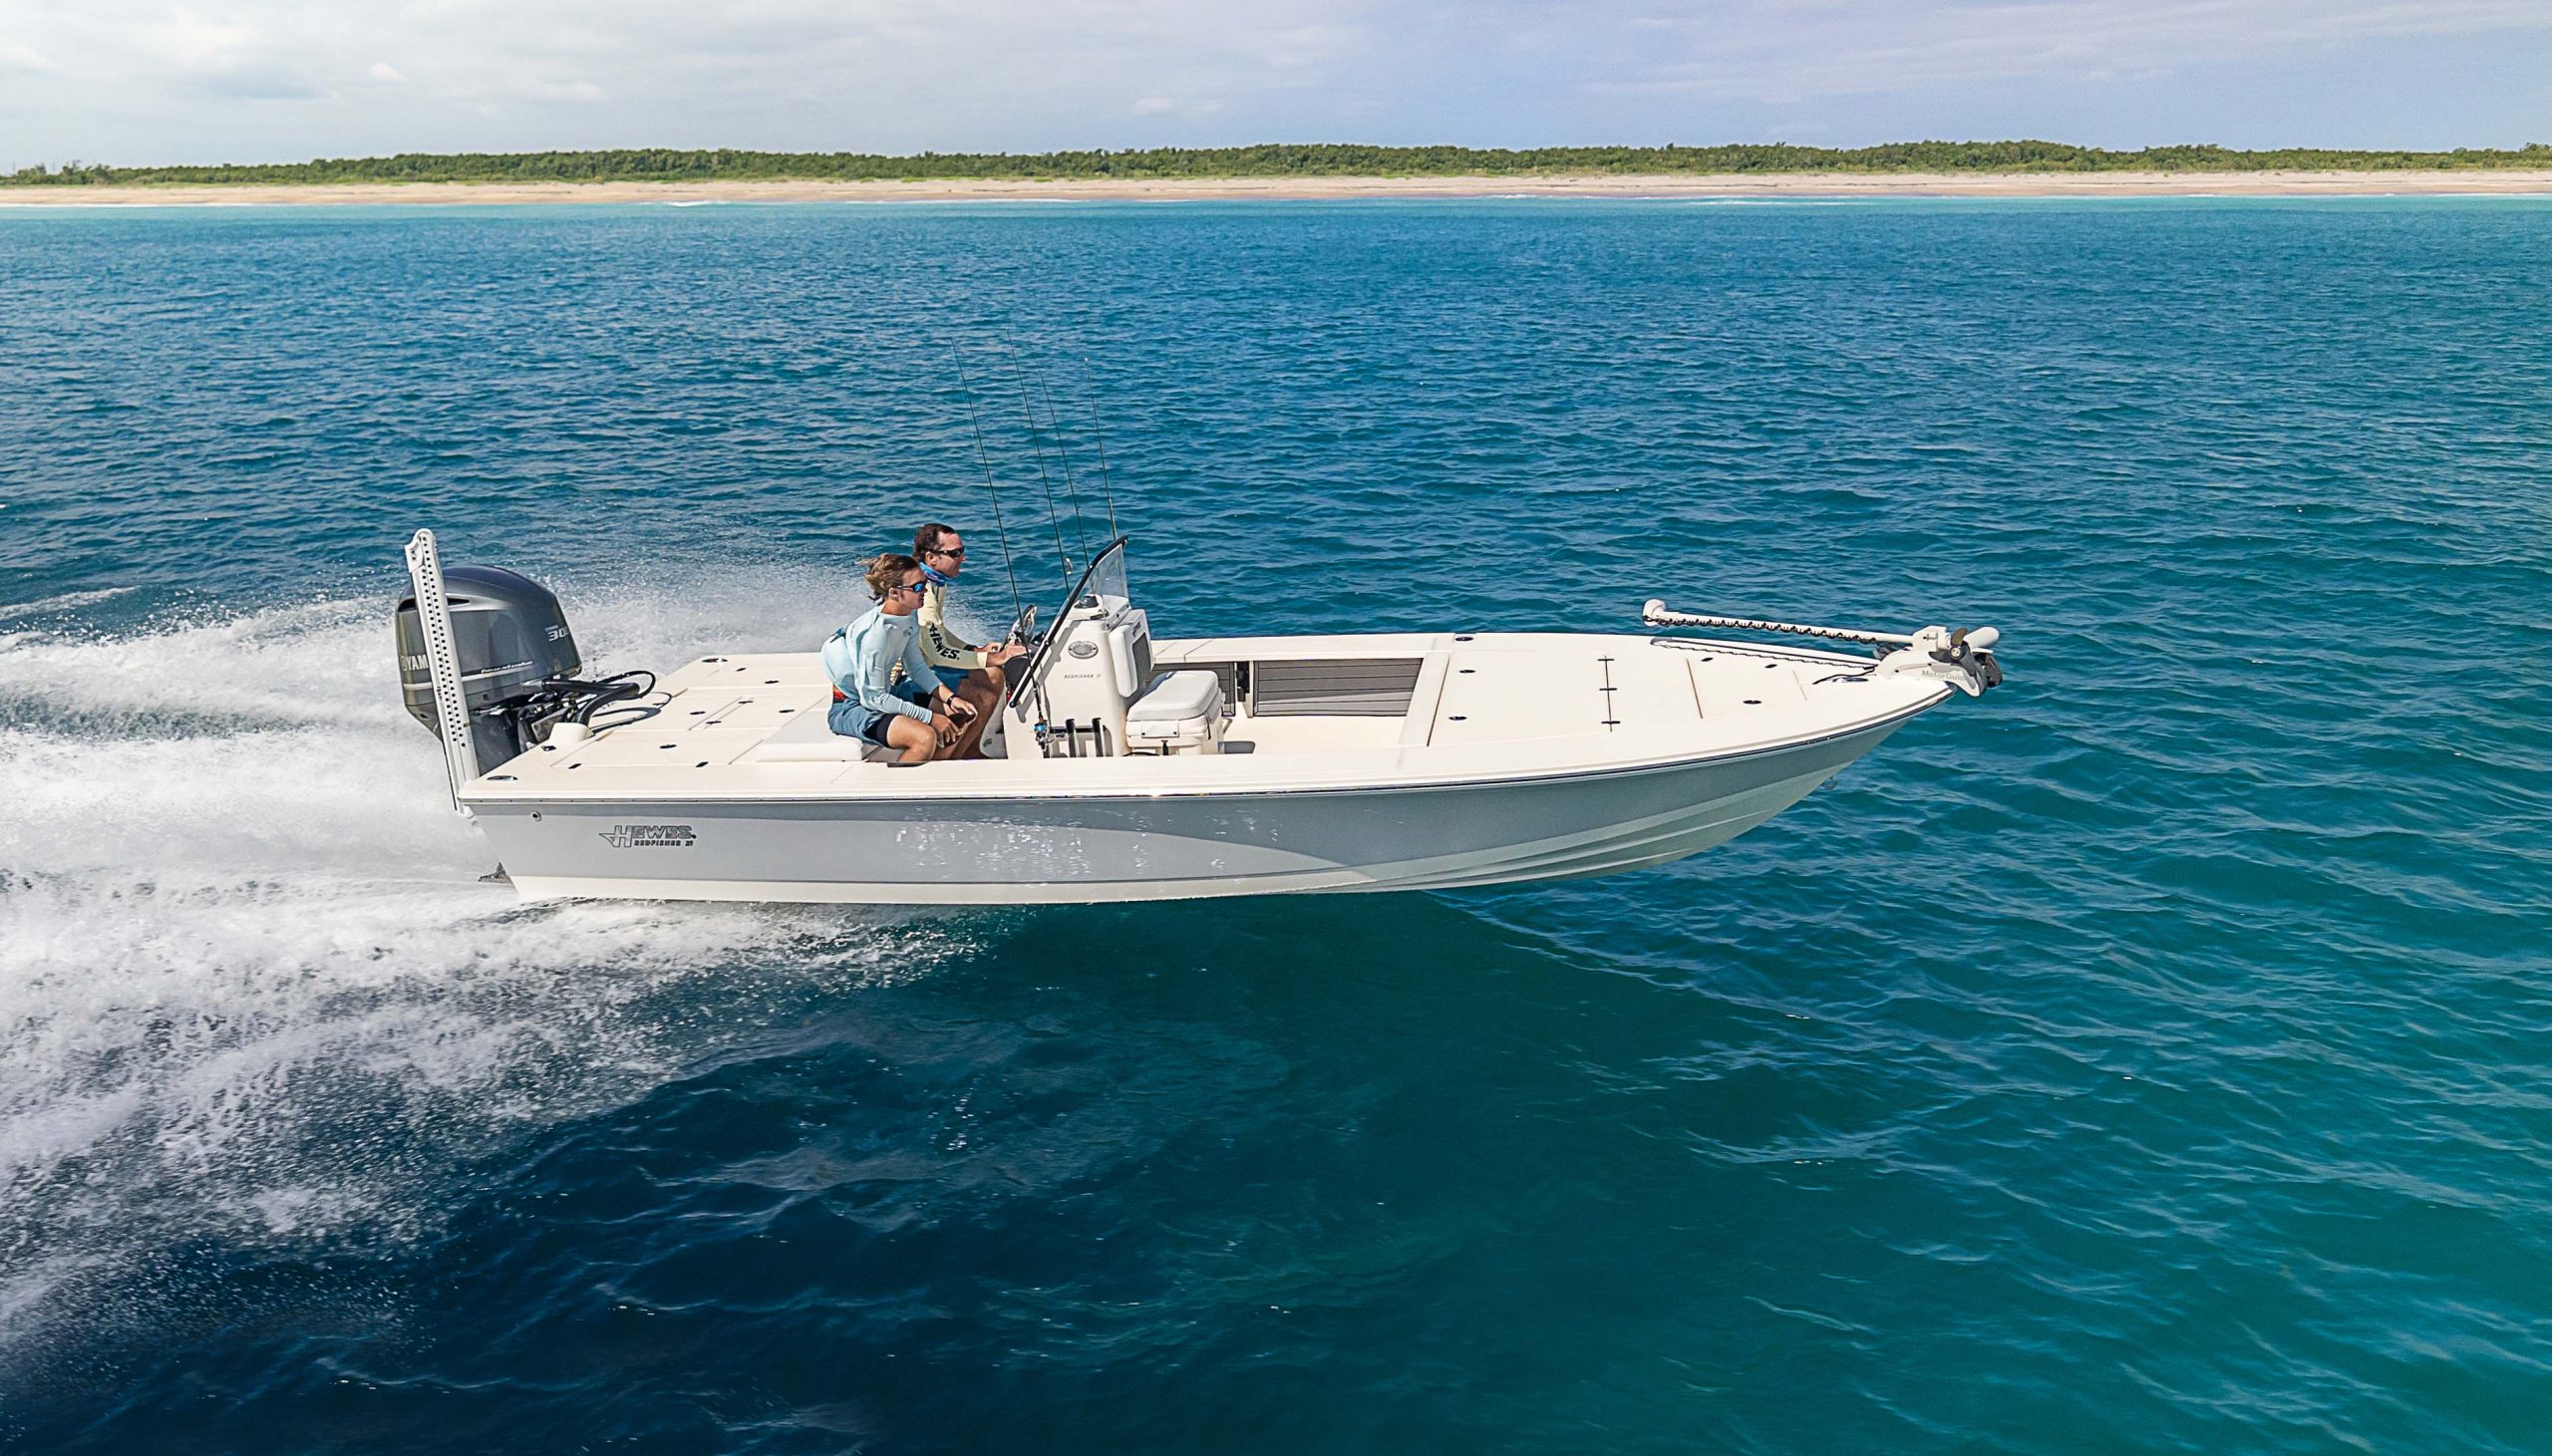 2021 Hewes Redfisher 21 Flats Boat Fishing Boat